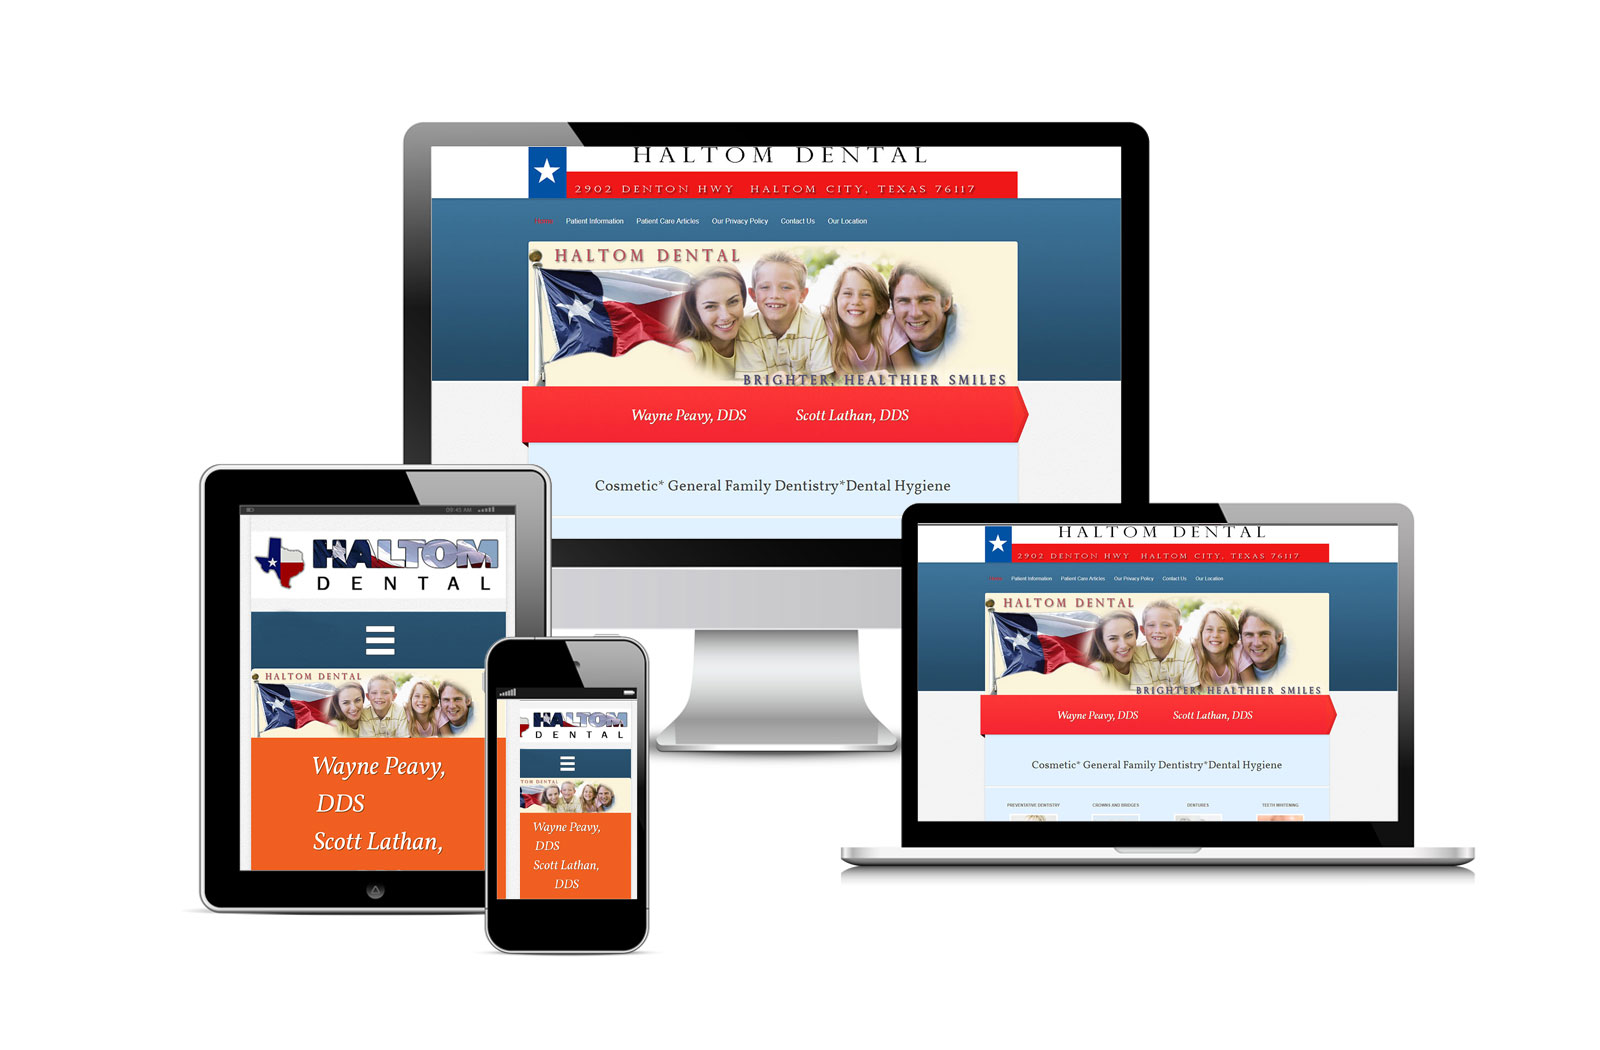 Haltom Dental Official Website Designed By Eric Alexander and Striped Ape Digital Media